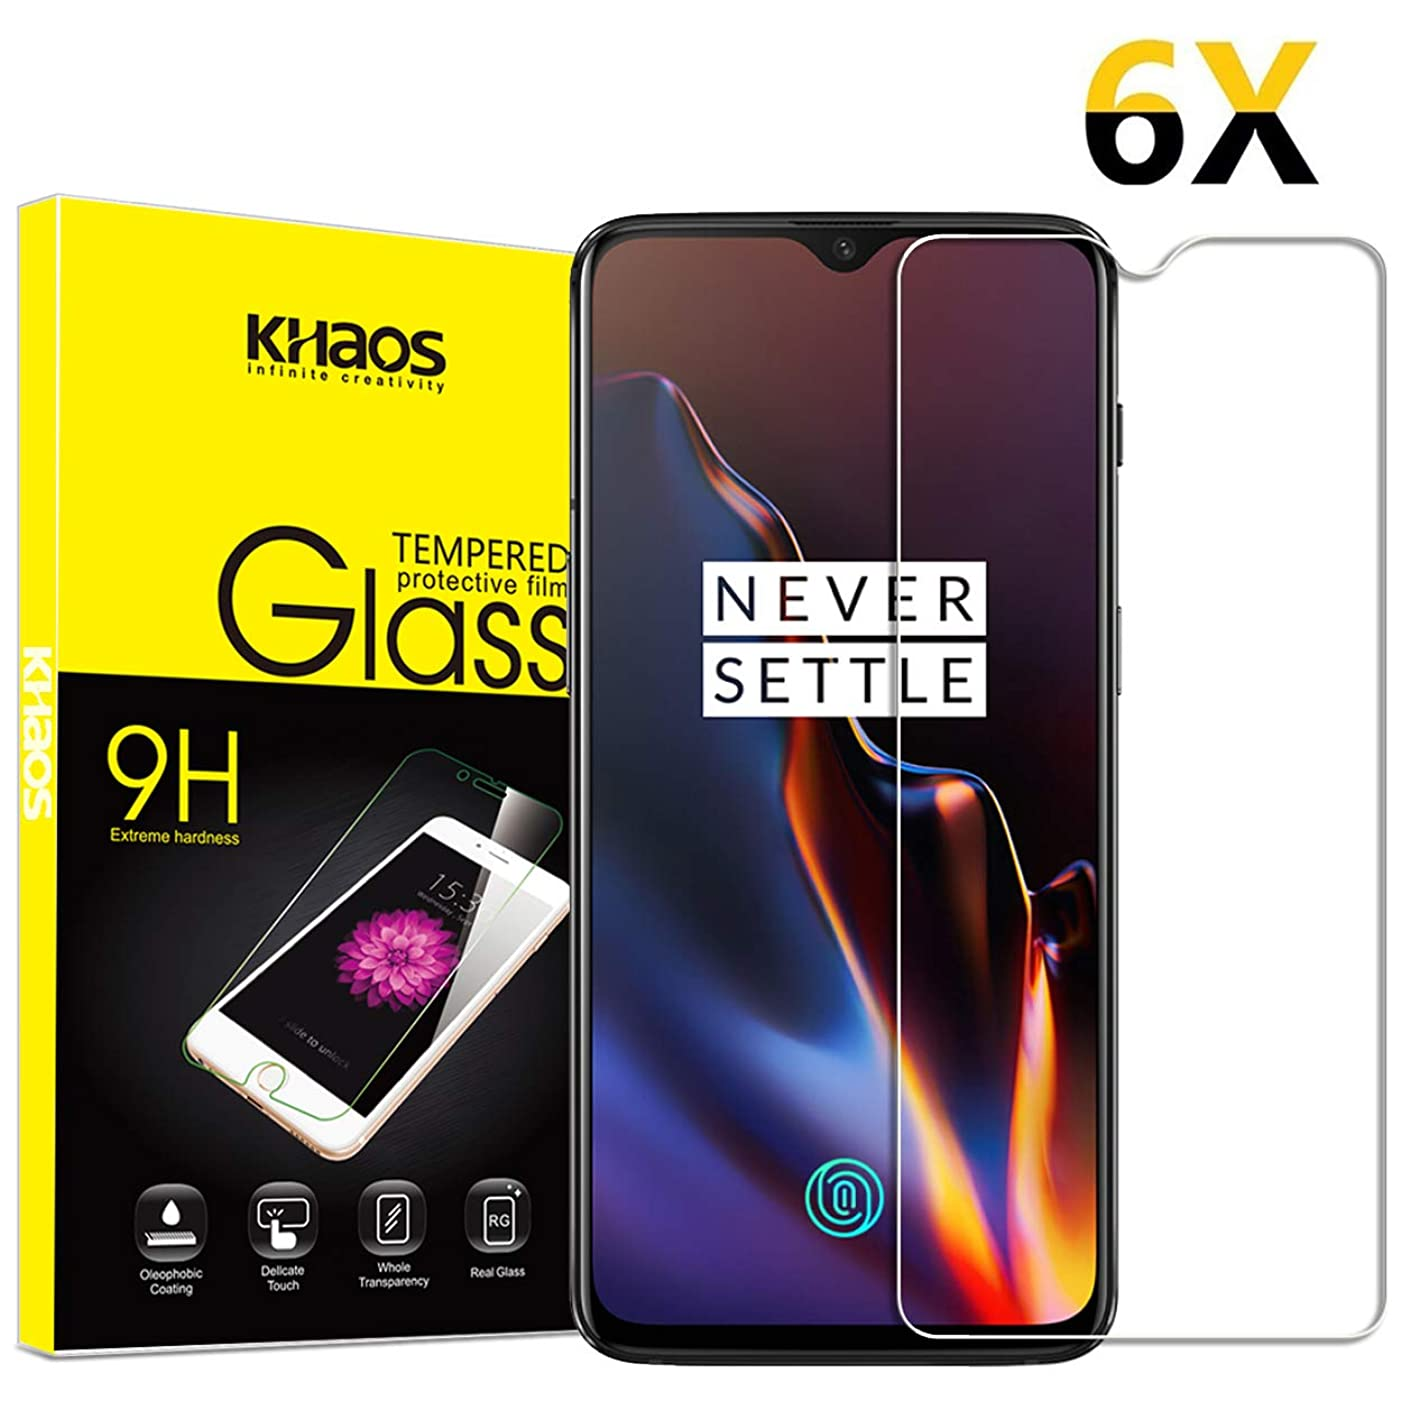 [6 Pack] Screen Protector for Oneplus 6T, KHAOS Tempered Glass Screen Protector for One Plus 6T Ultra Clear Scratch Resistant